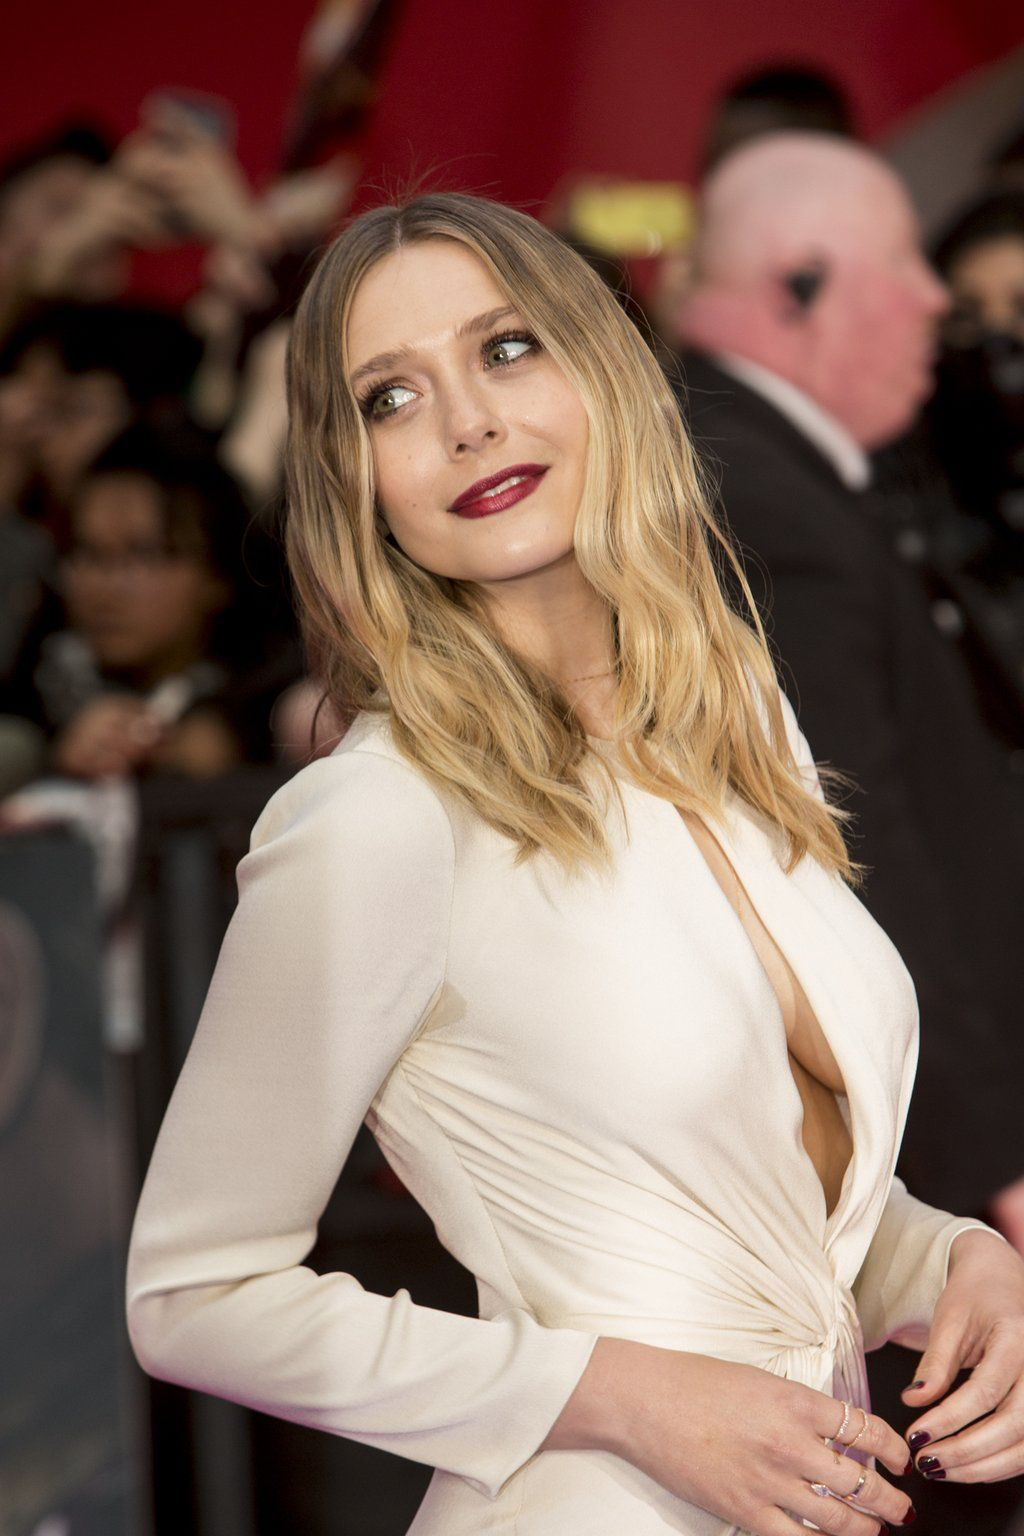 Cleavage Mary Kate Olsen nudes (84 foto and video), Ass, Fappening, Selfie, in bikini 2015